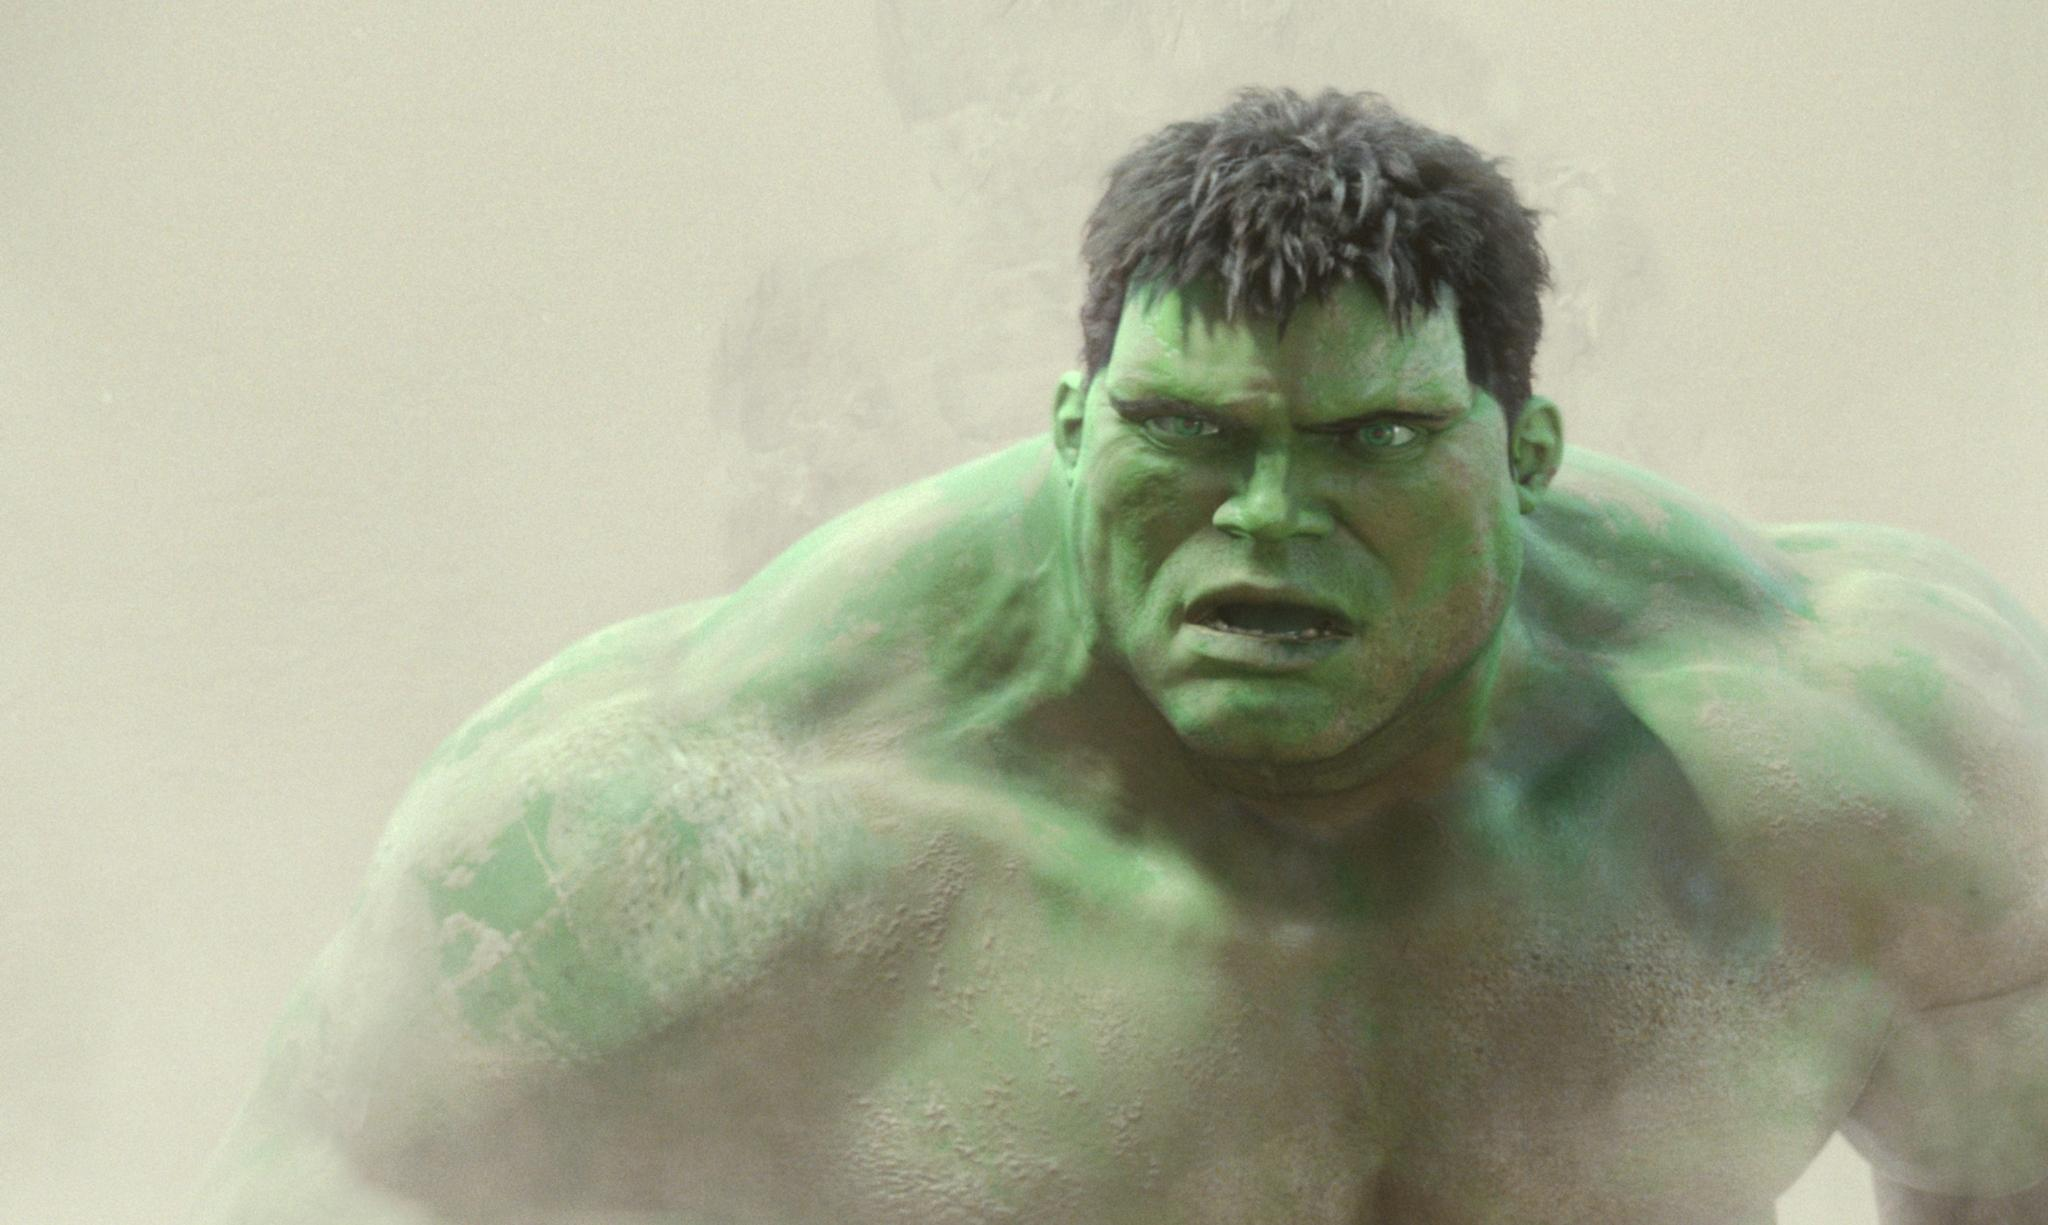 The Hulk That Never Happened